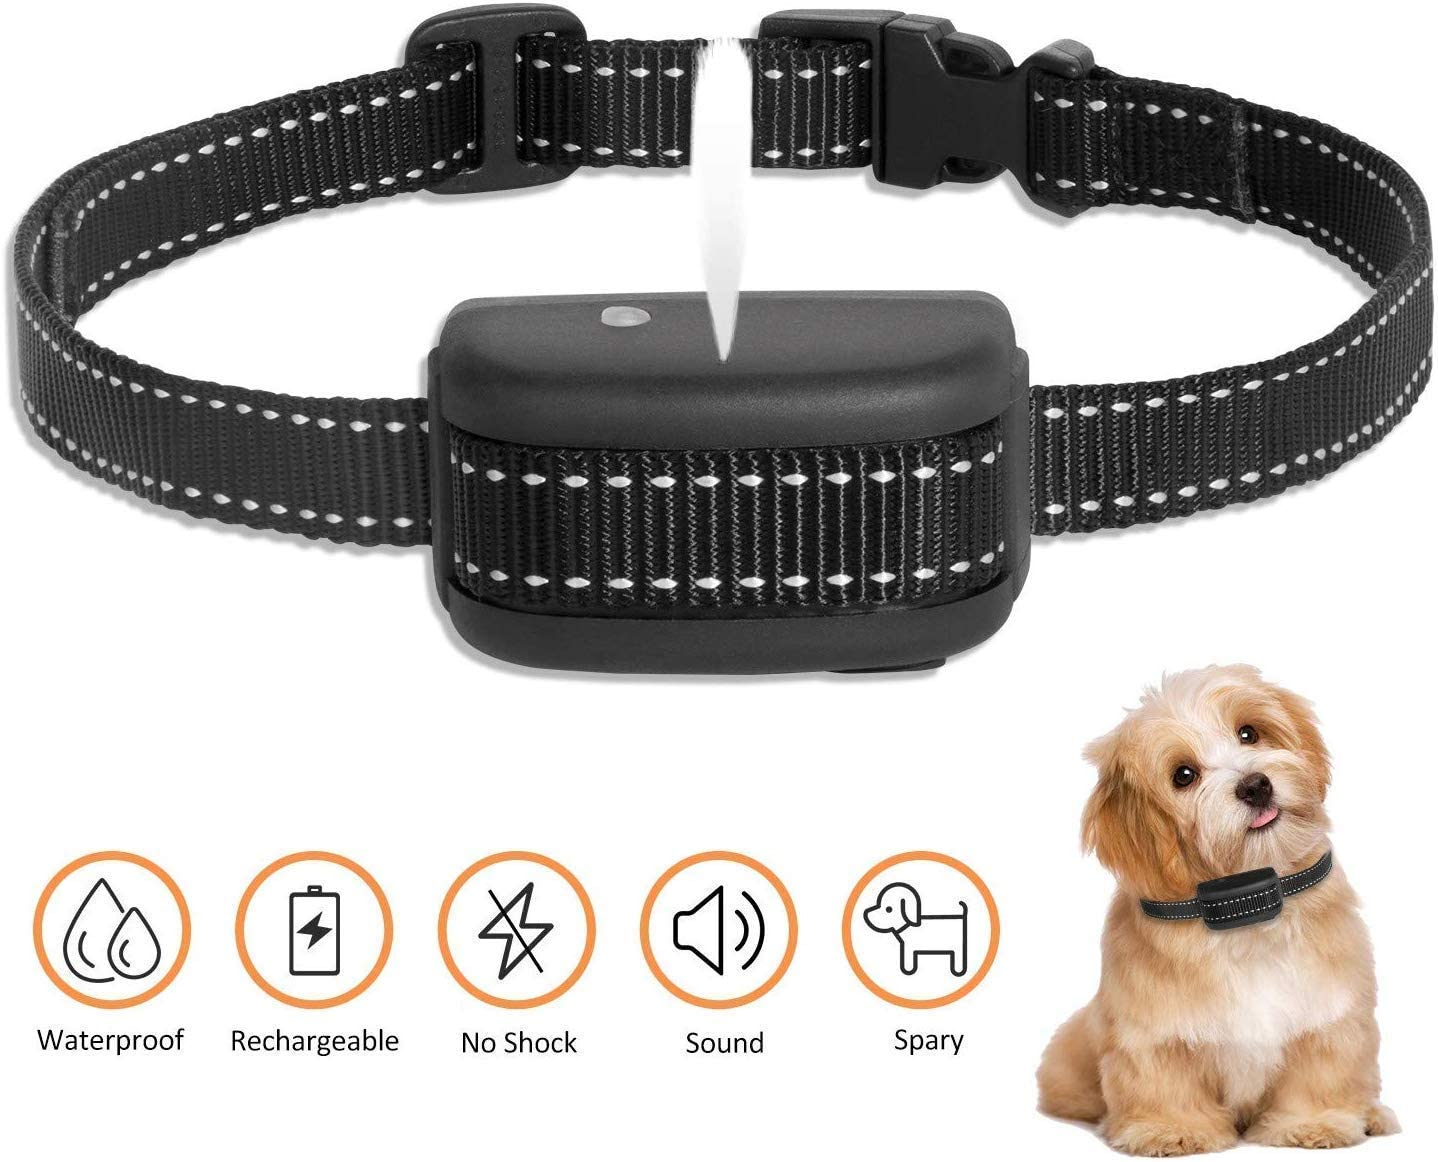 Zeonetak Rechargeable Spray Bark Collar, Citronella Dog Bark Collar Stop Barking Collar for Dogs Small Medium Large,Adjustable Waterproof, No Shock, Harmless Humane